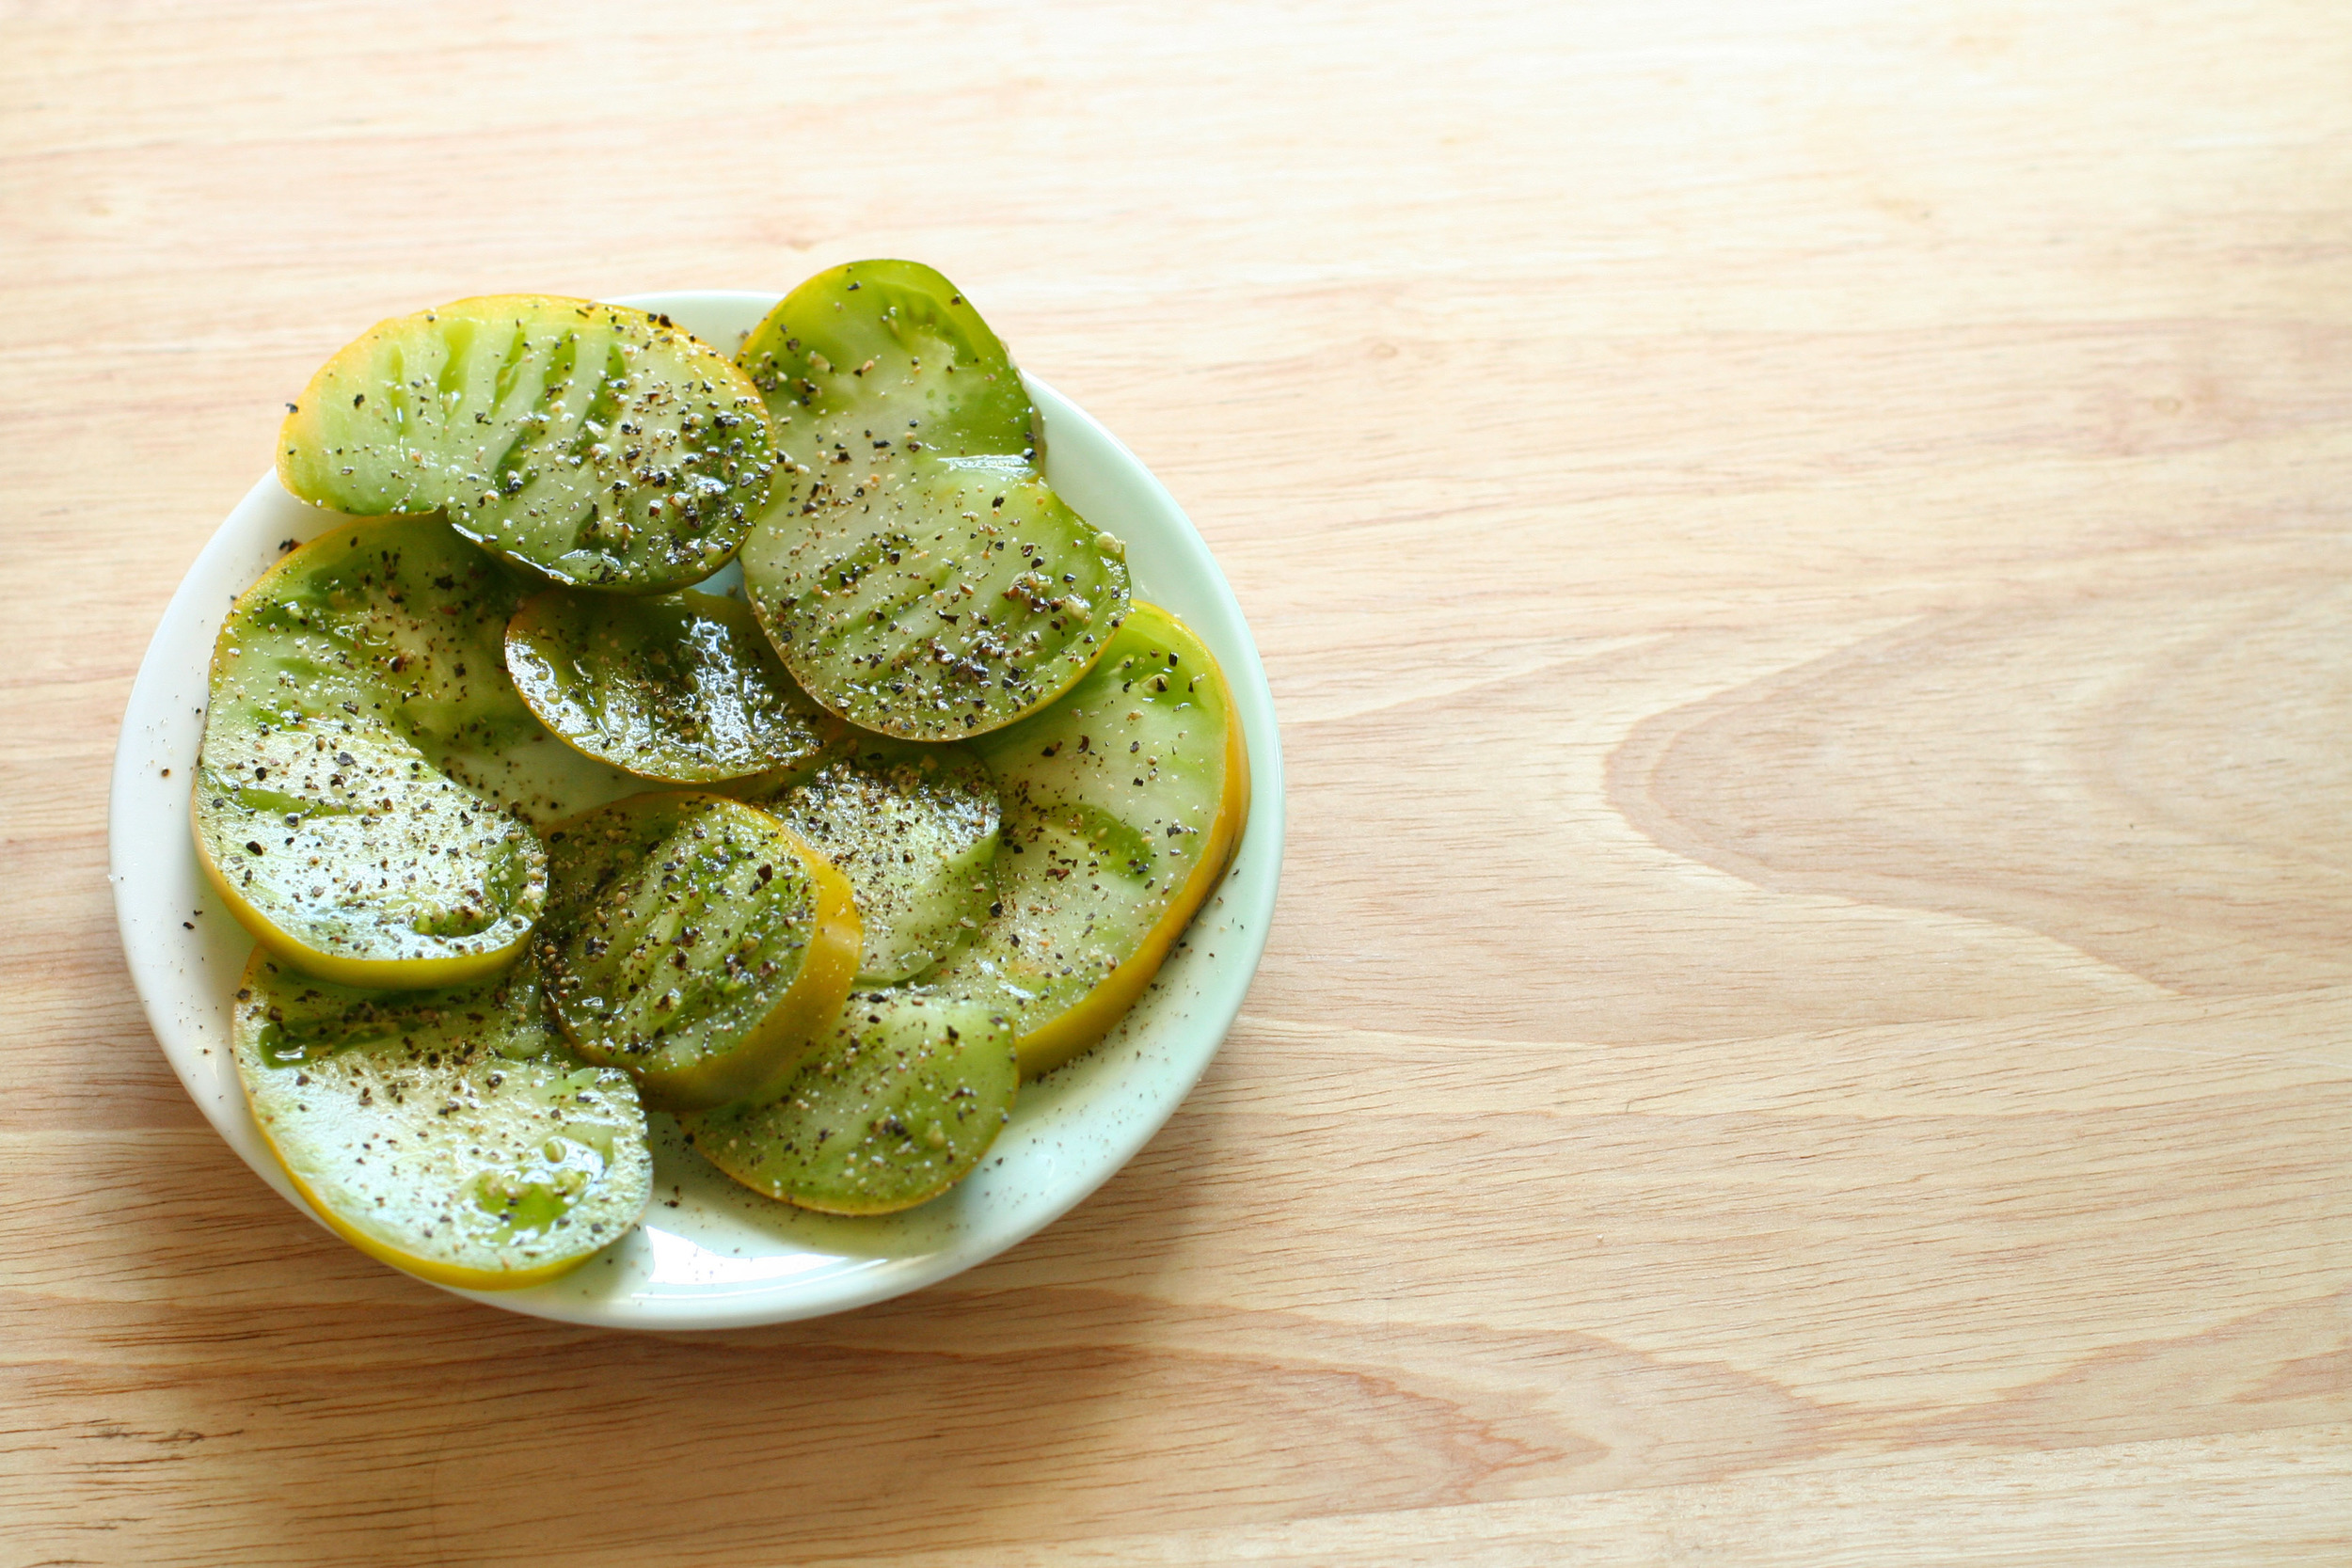 amish green tomatoes plate.jpg